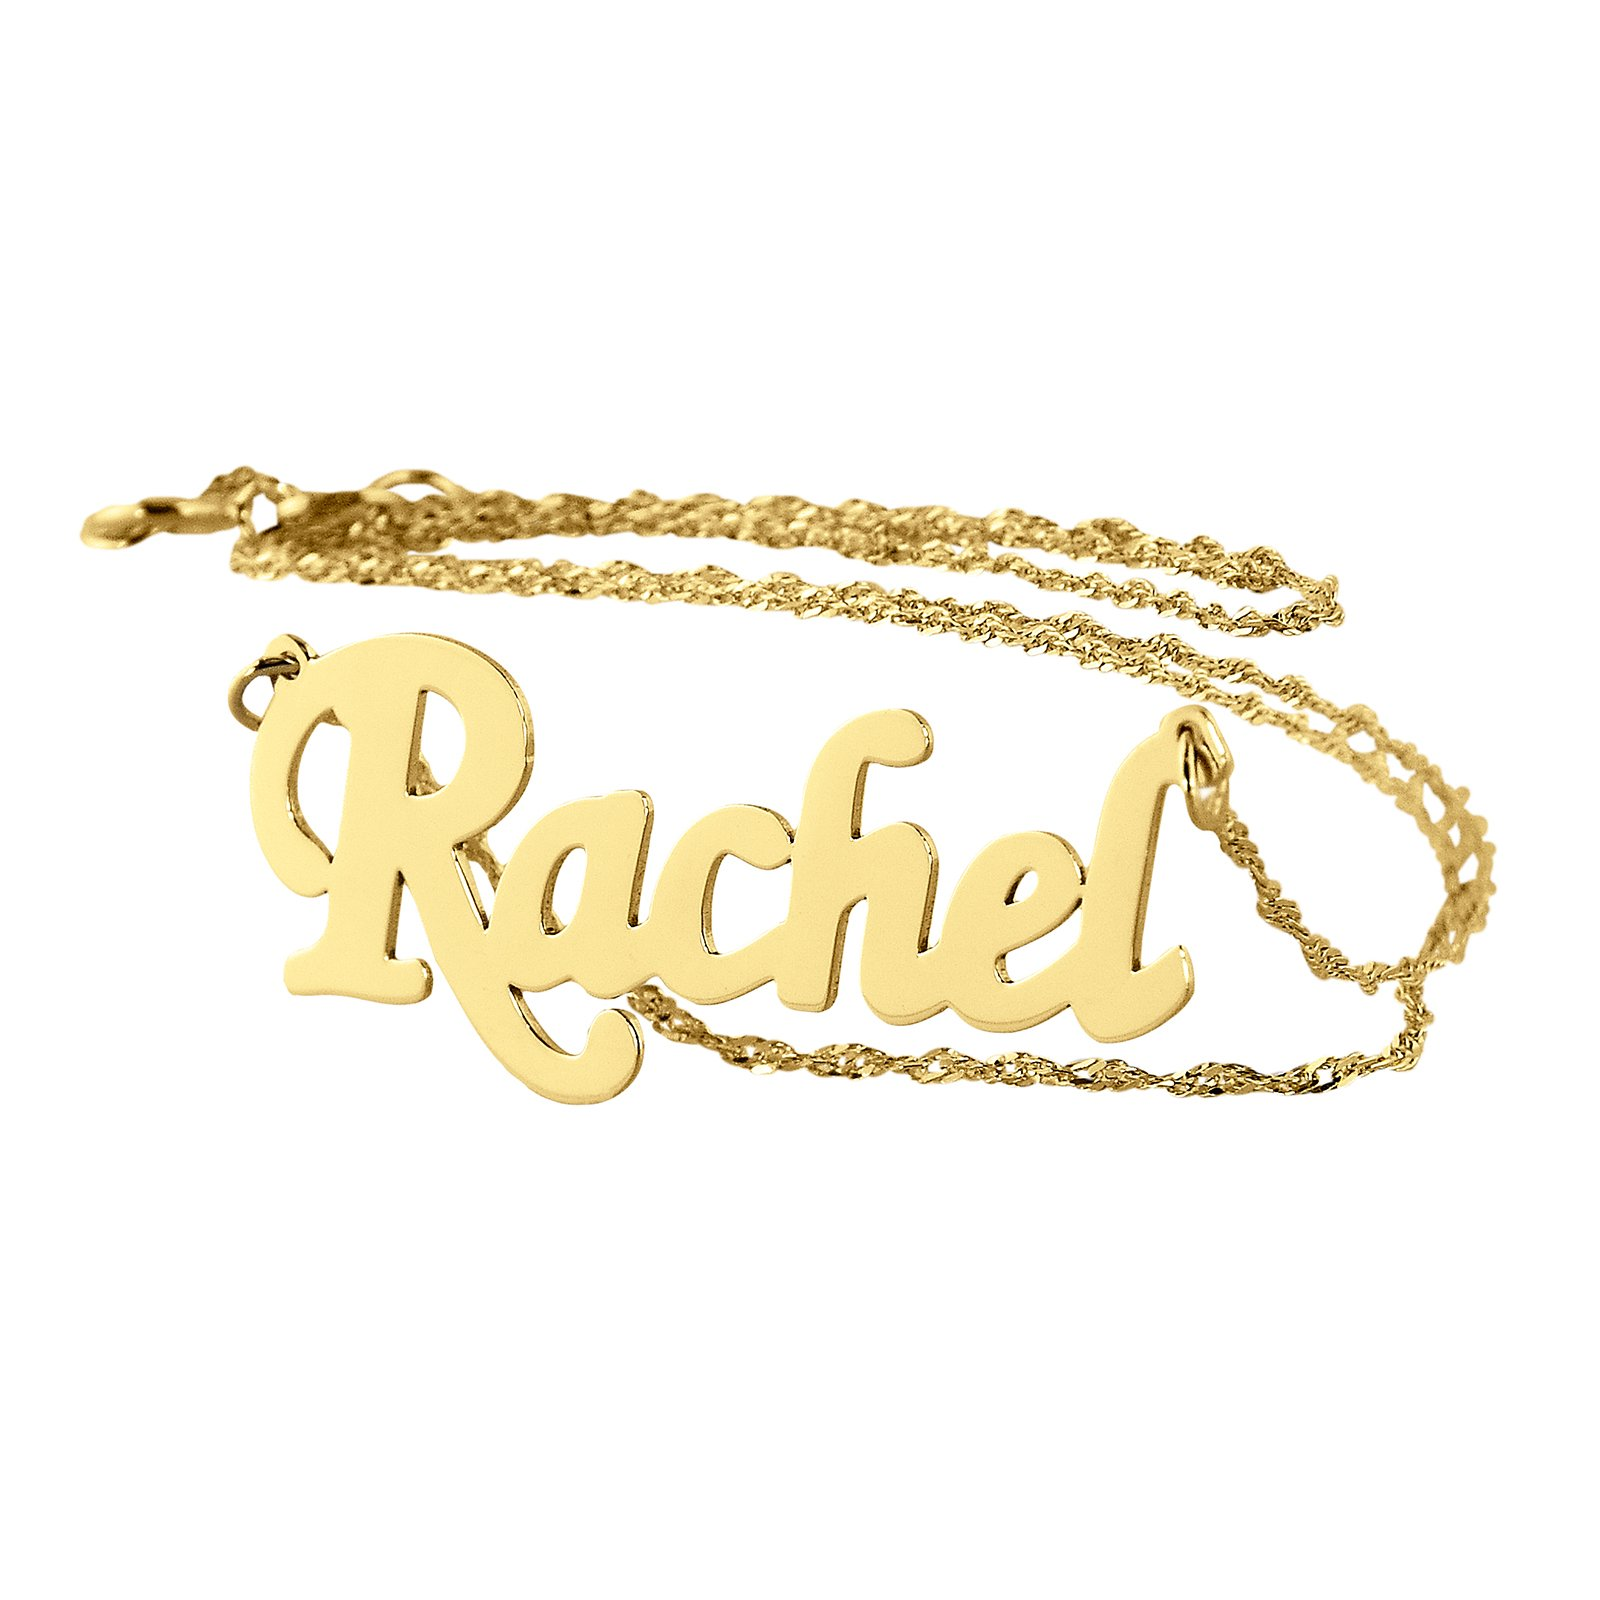 Personalized Name Necklace 14k Gold Dainty Small Pendant Charm. (16) by Soul Jewelry